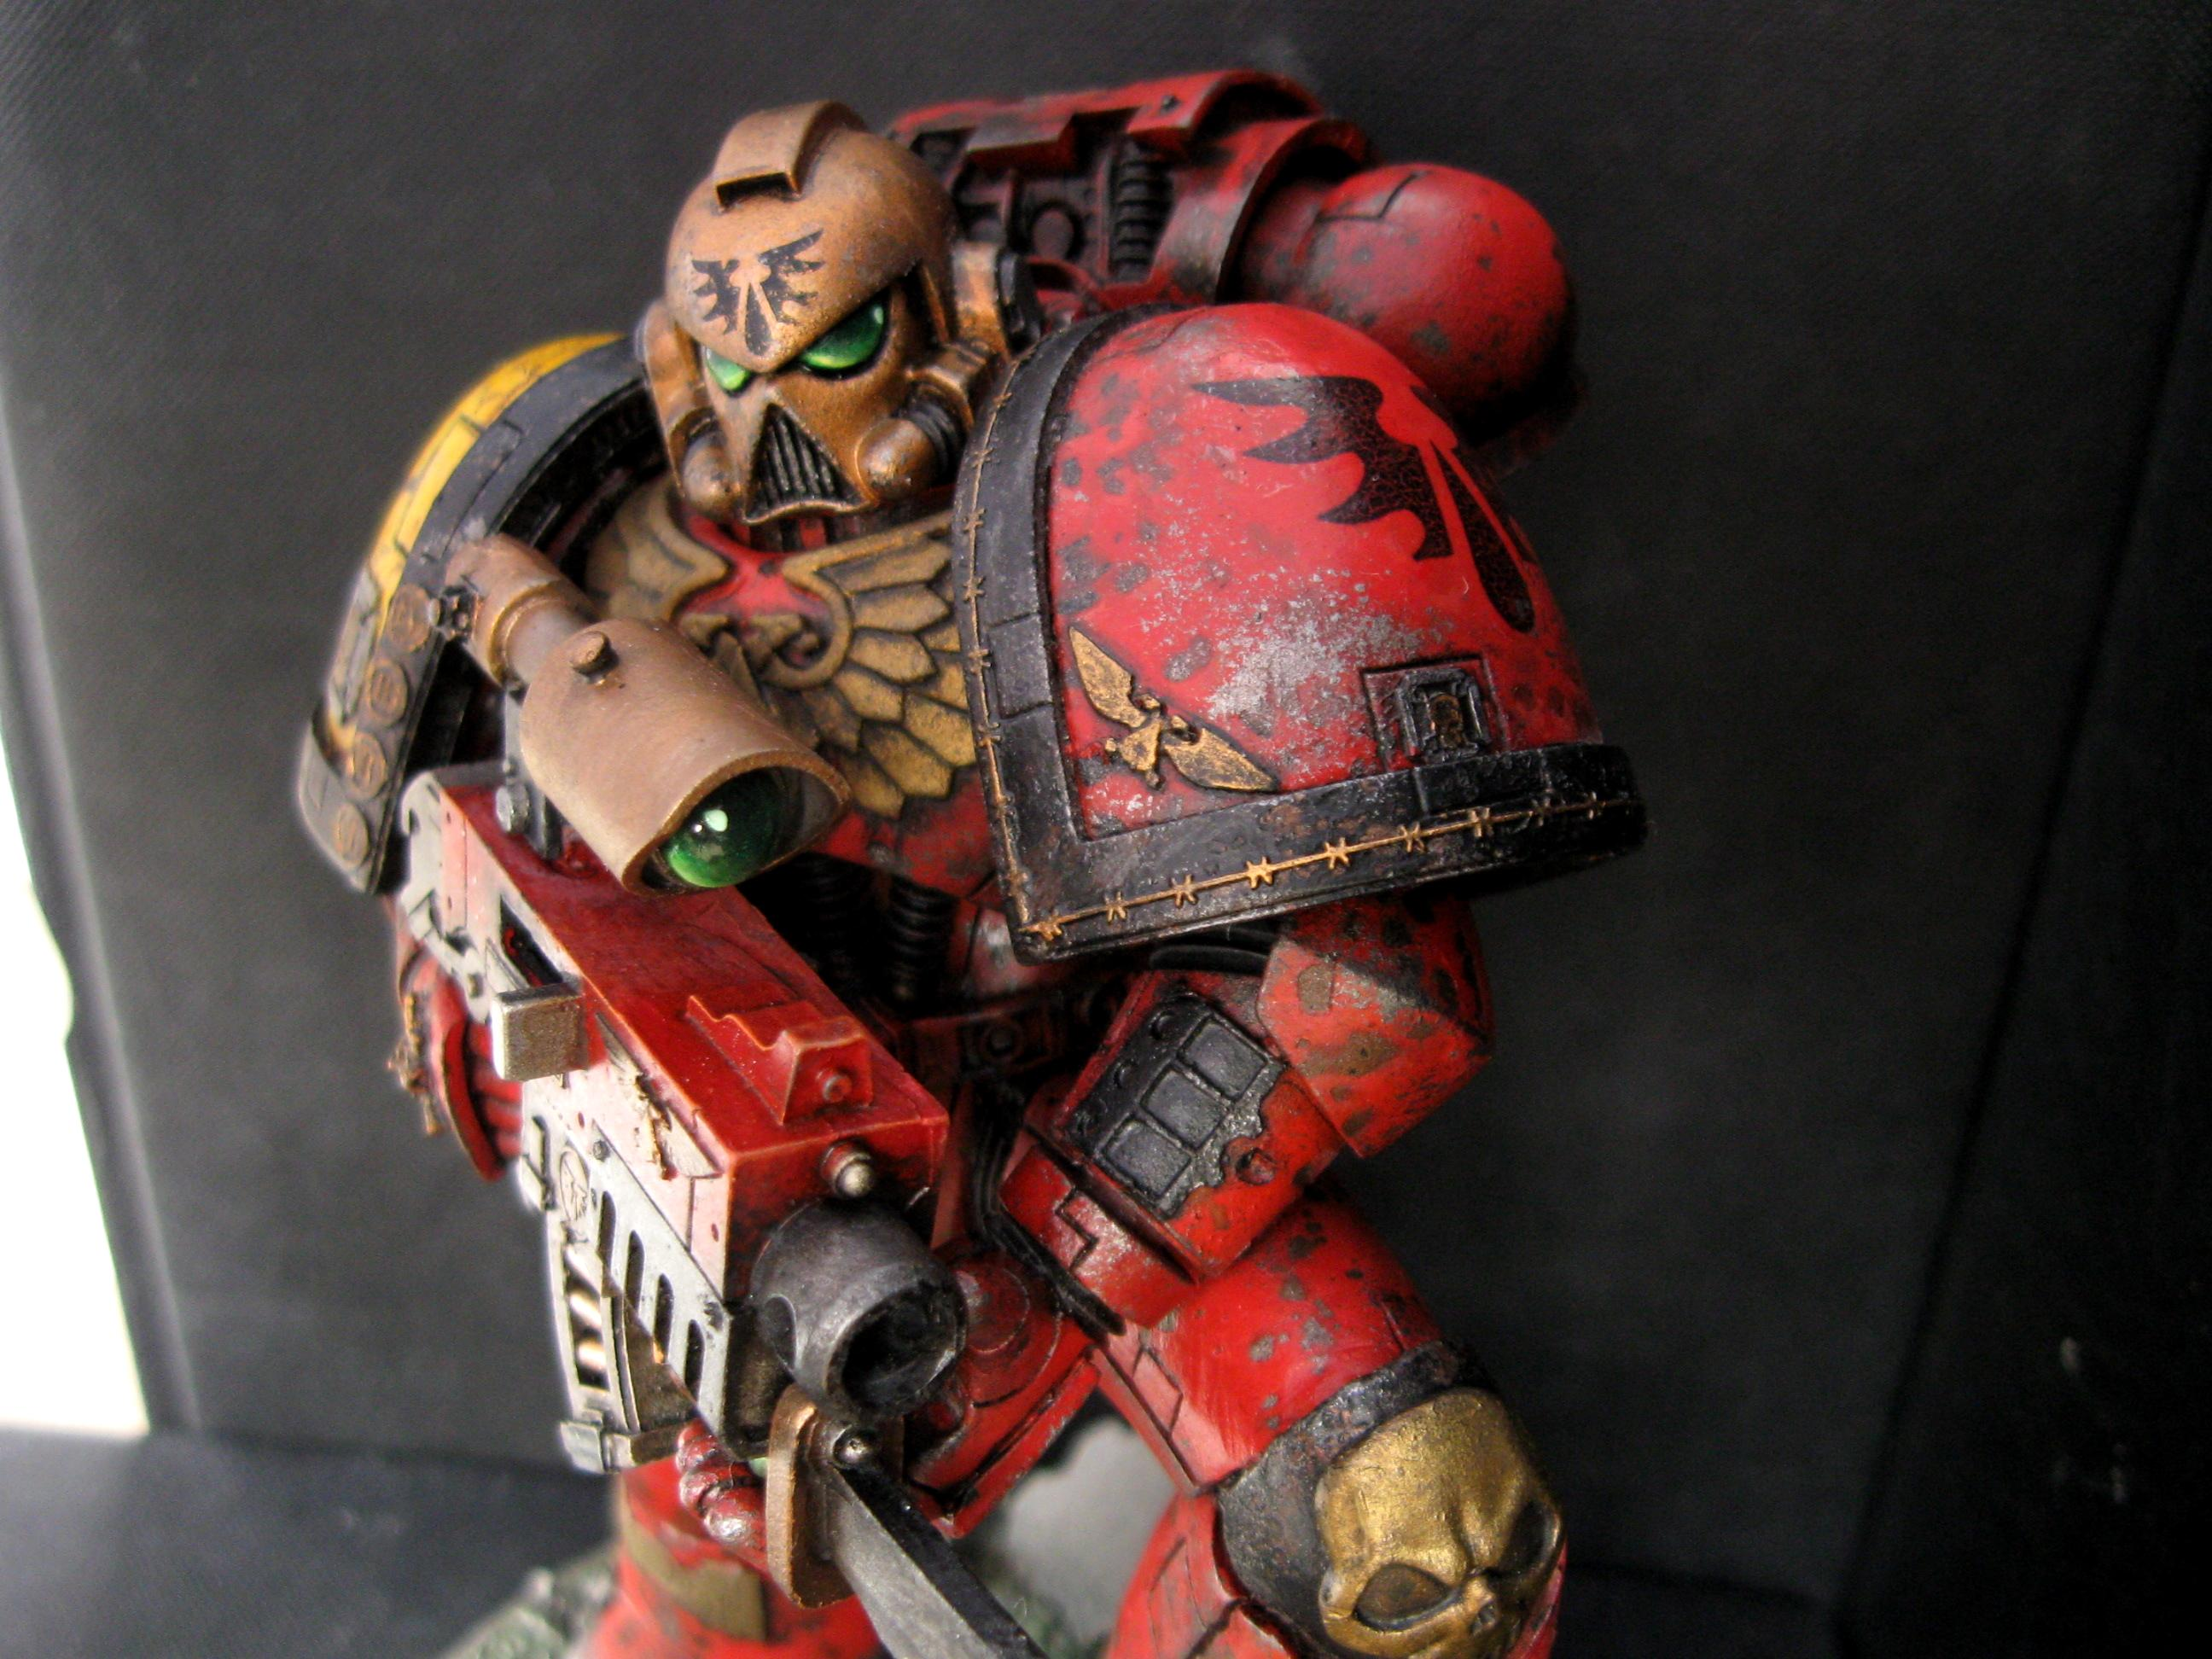 Blood Angels, Forge World, Large, Space Marines - Forgeworld Space